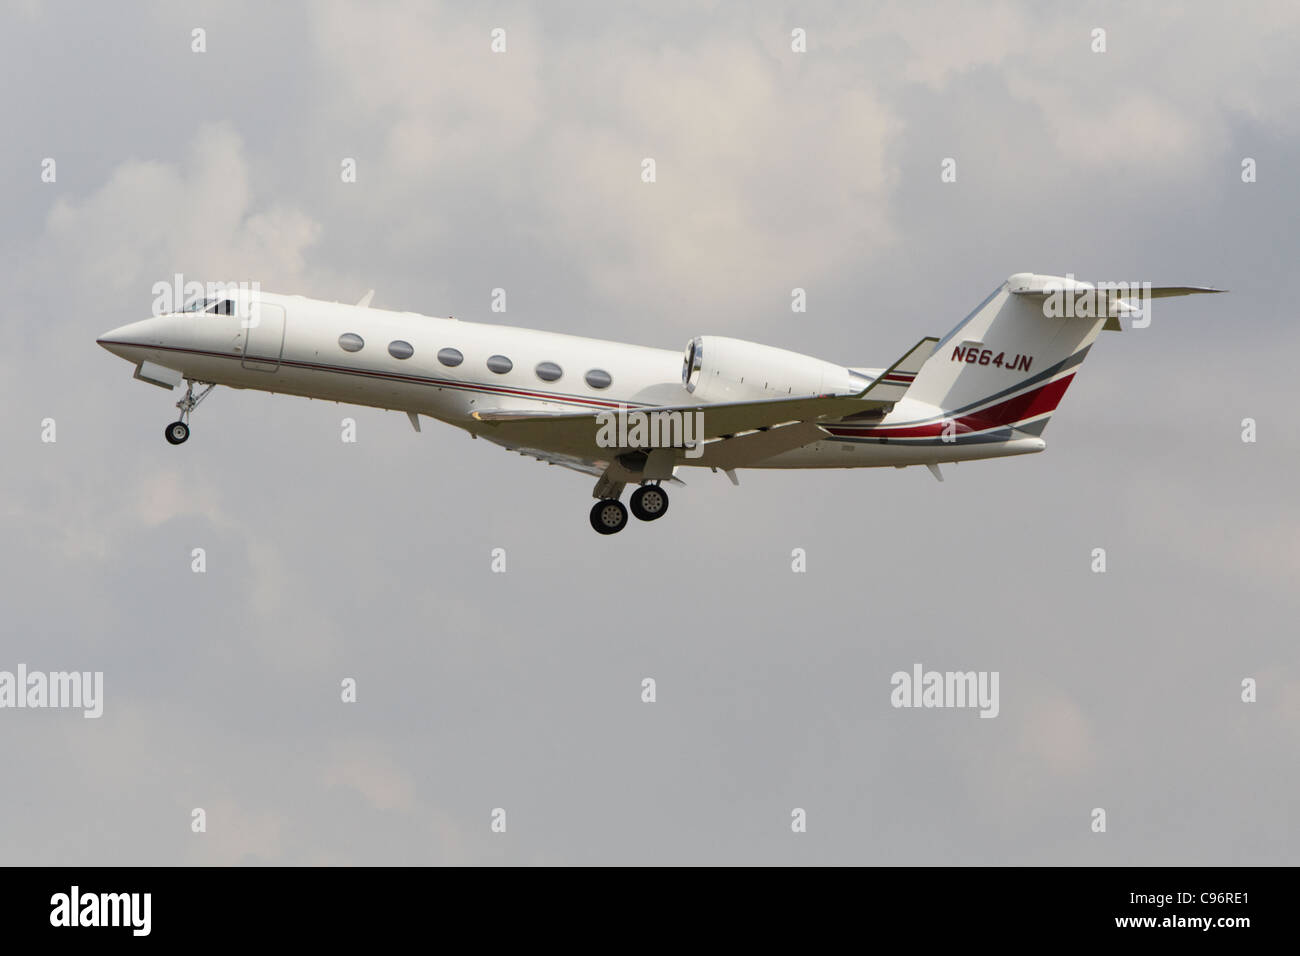 Gulfstream G-IV climbing after taking off from runway - Stock Image